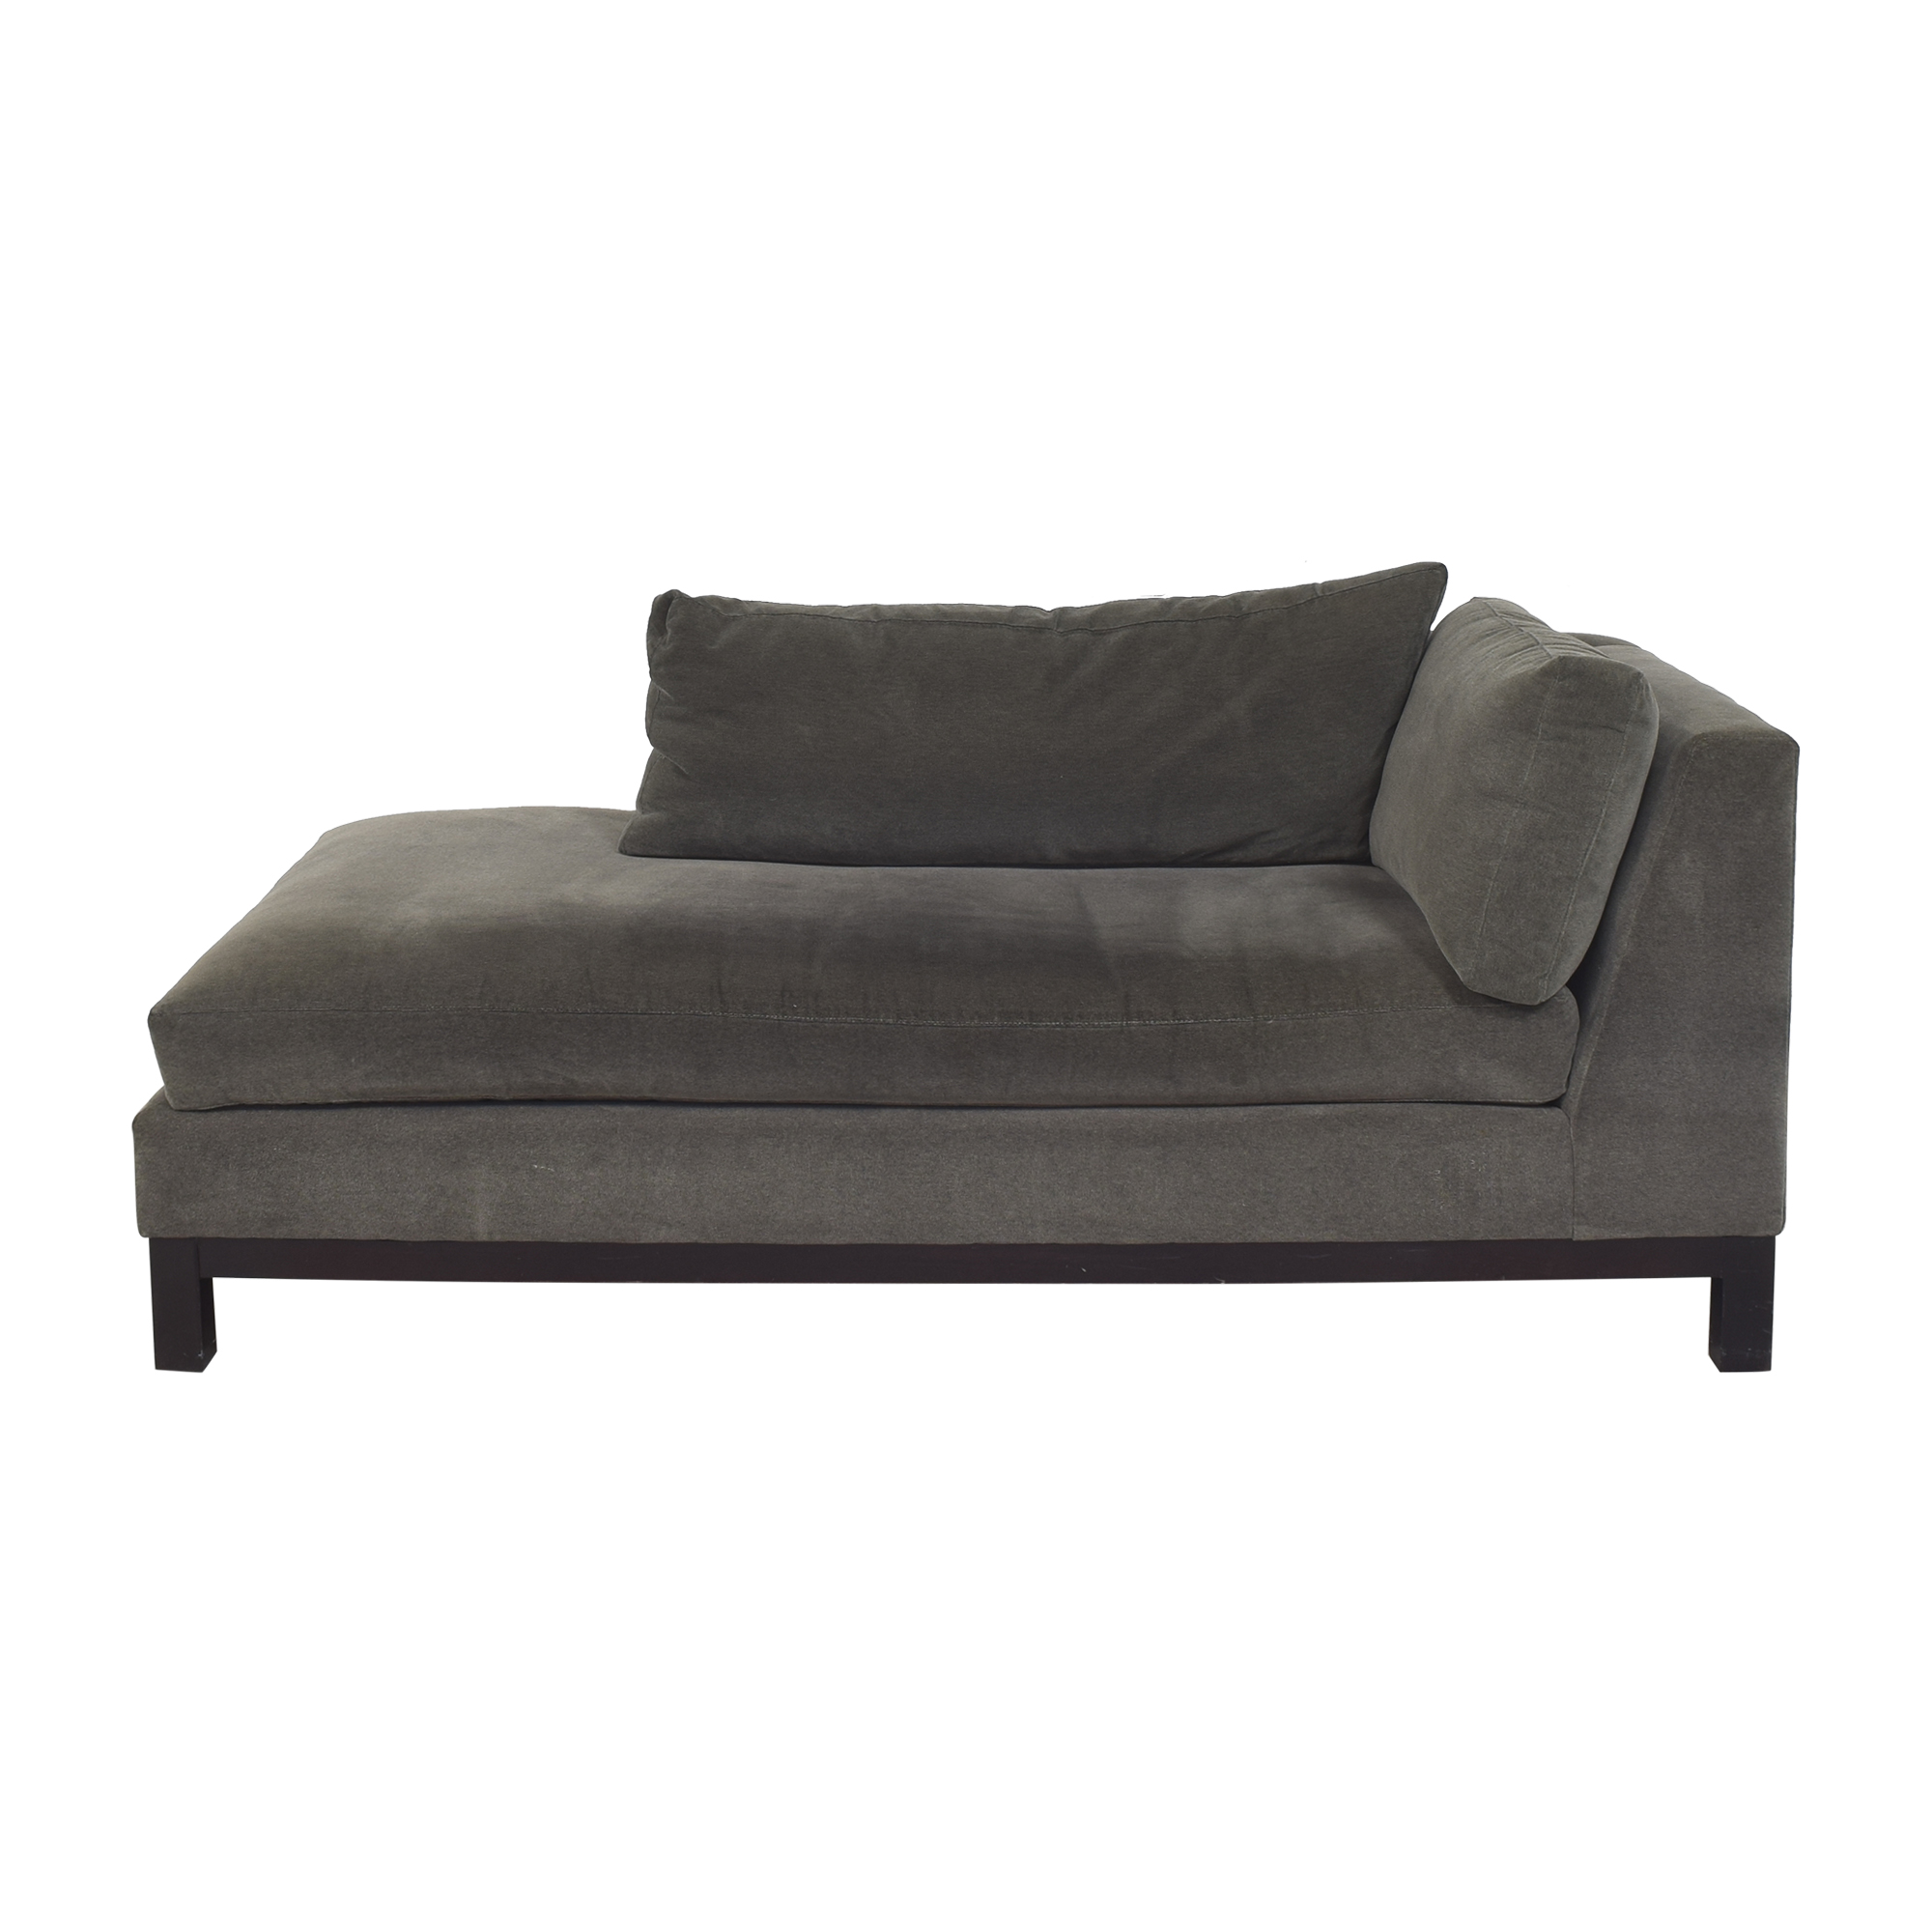 shop Crate & Barrel Chaise Lounge Crate & Barrel Chaises